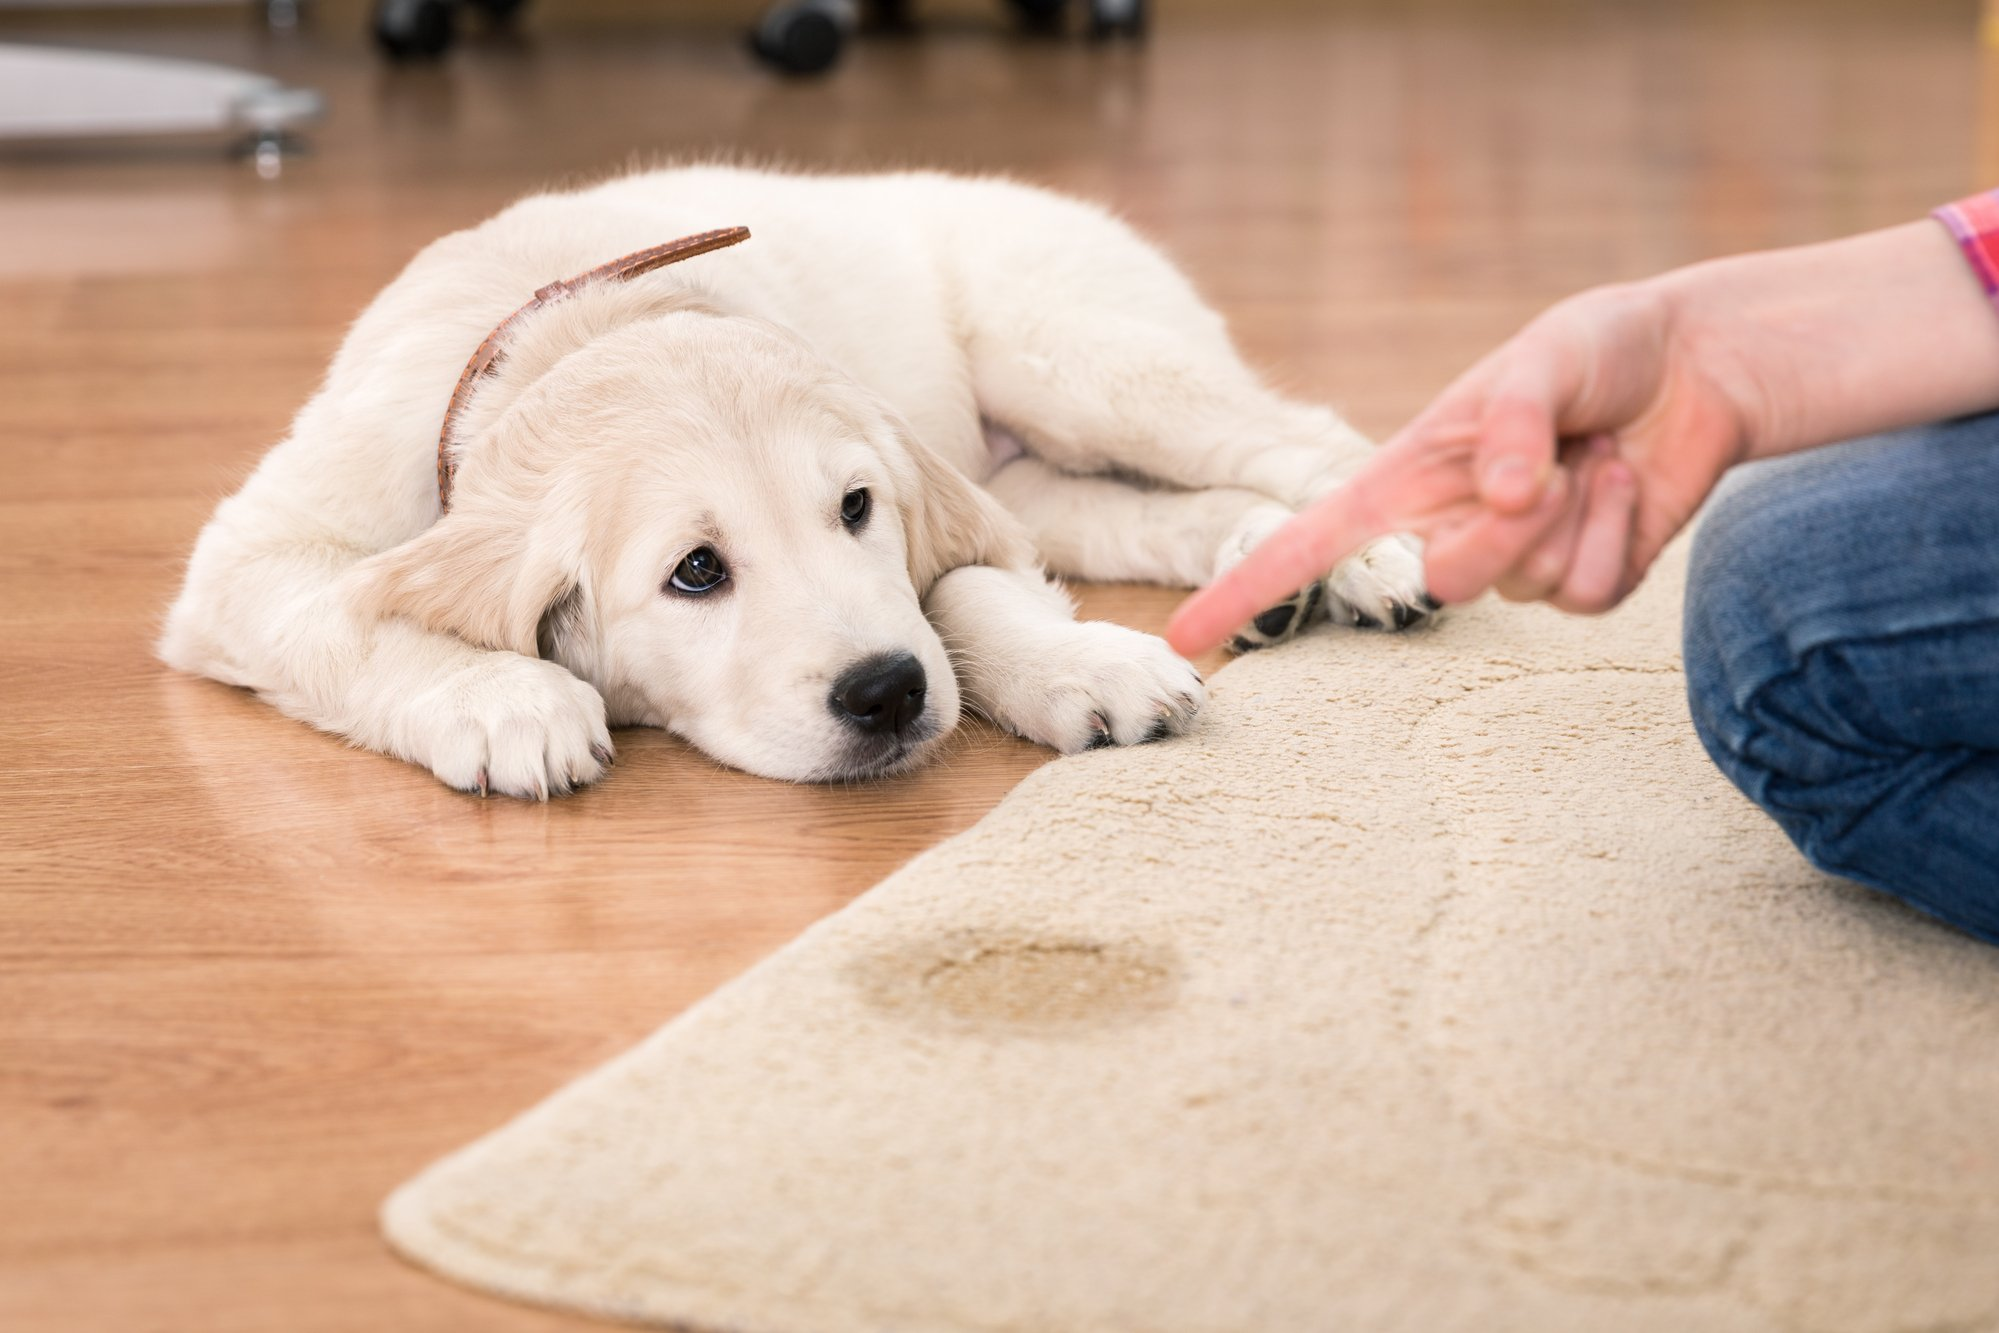 House training a Golden Retriever puppy after it peed on a rug